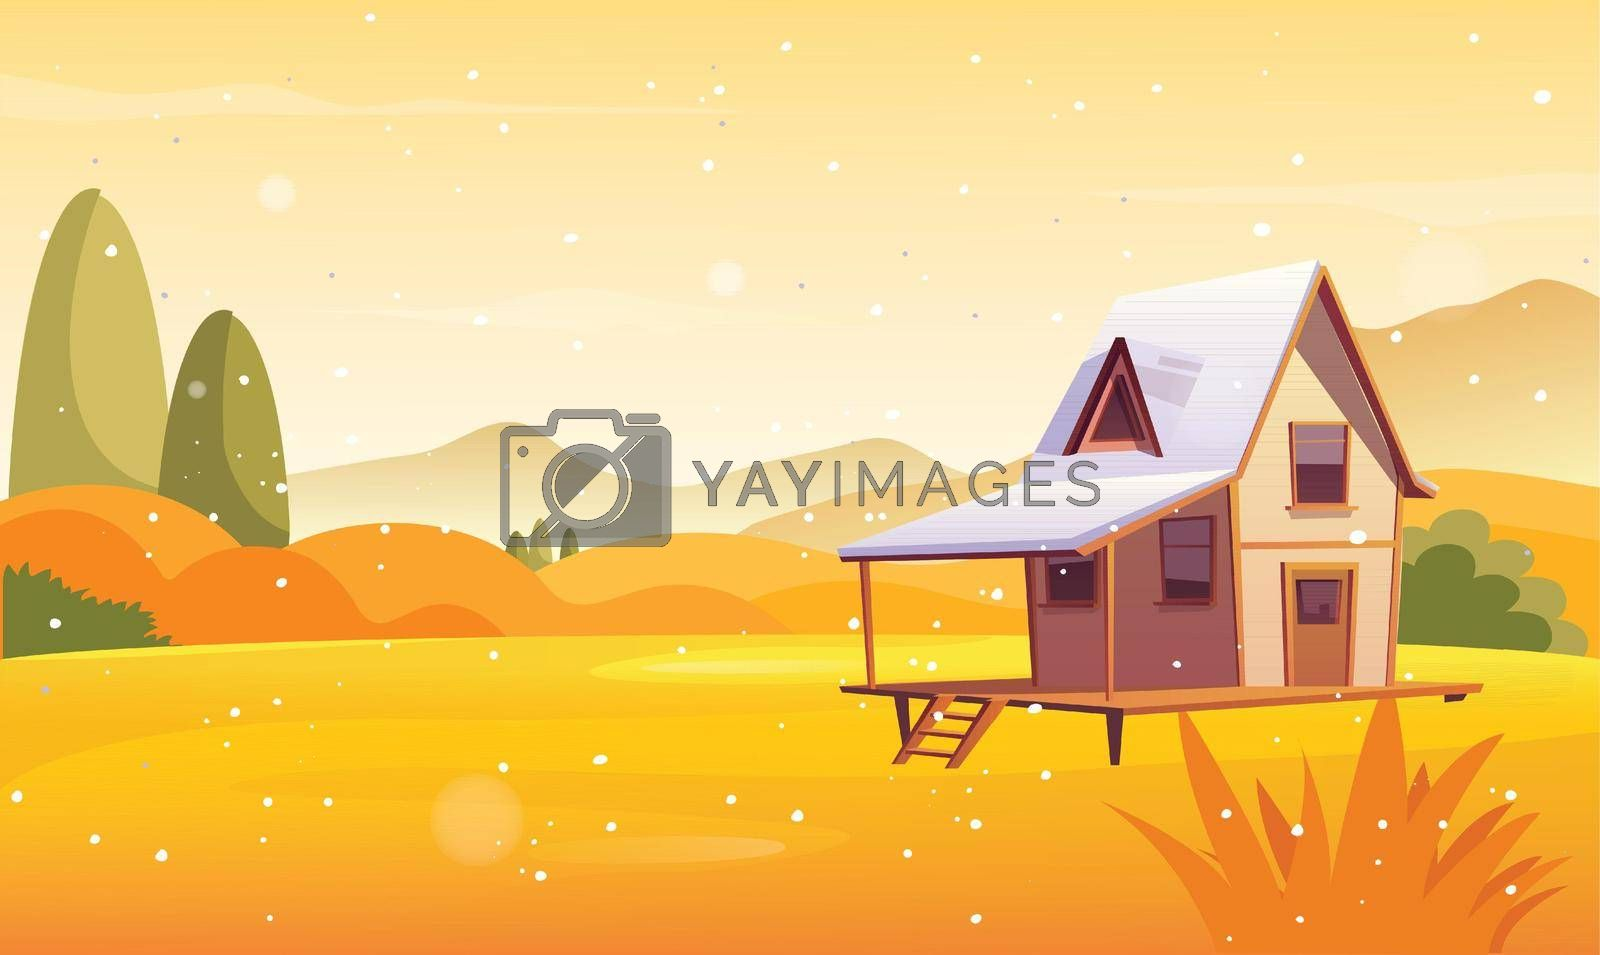 Royalty free image of a small wooden house in a beautiful desert on a sunny day by aanavcreationsplus